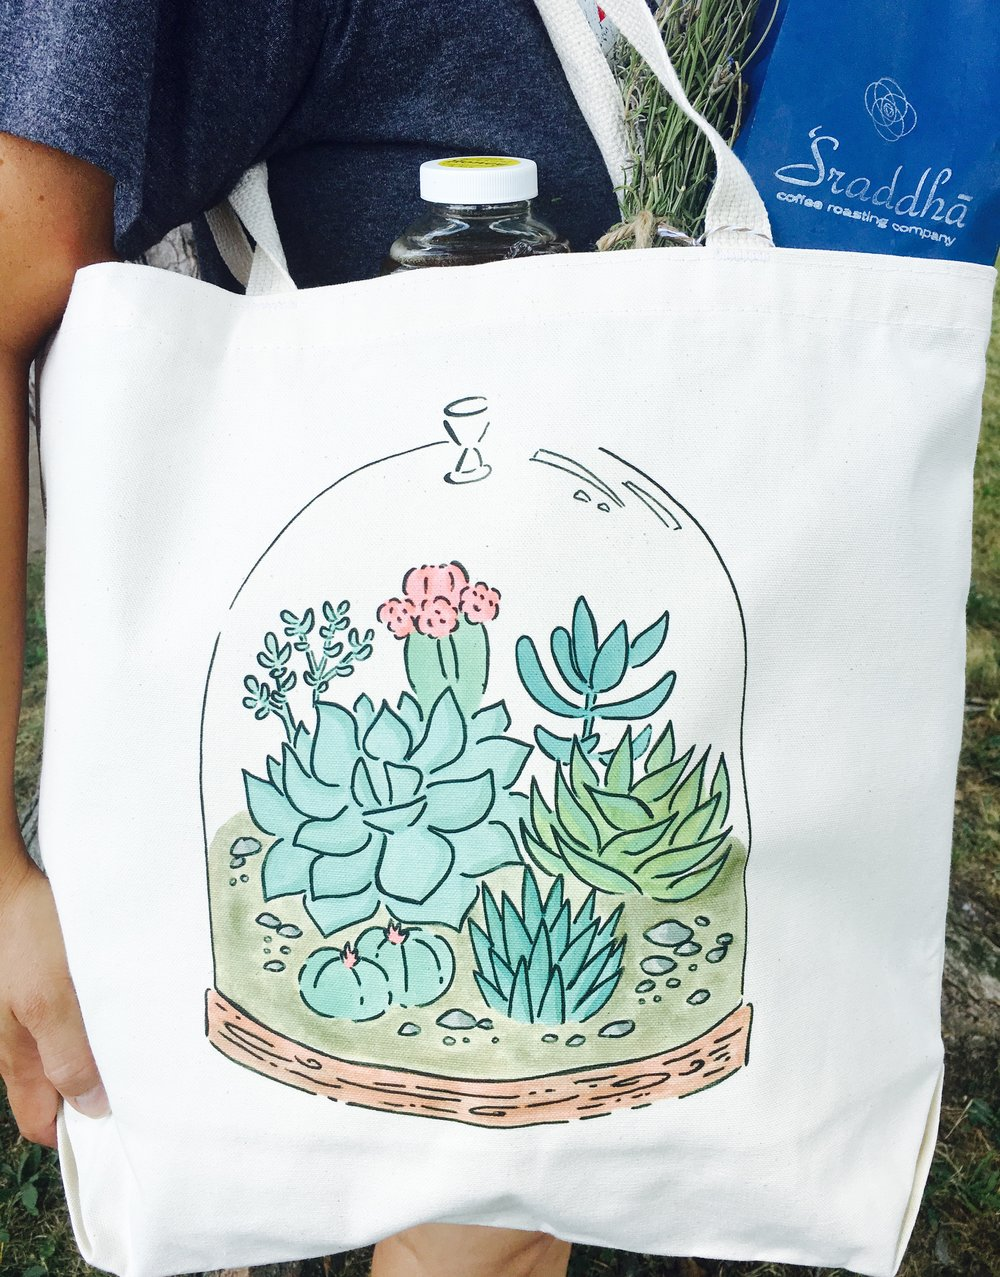 One of our totes, filled with local goodies